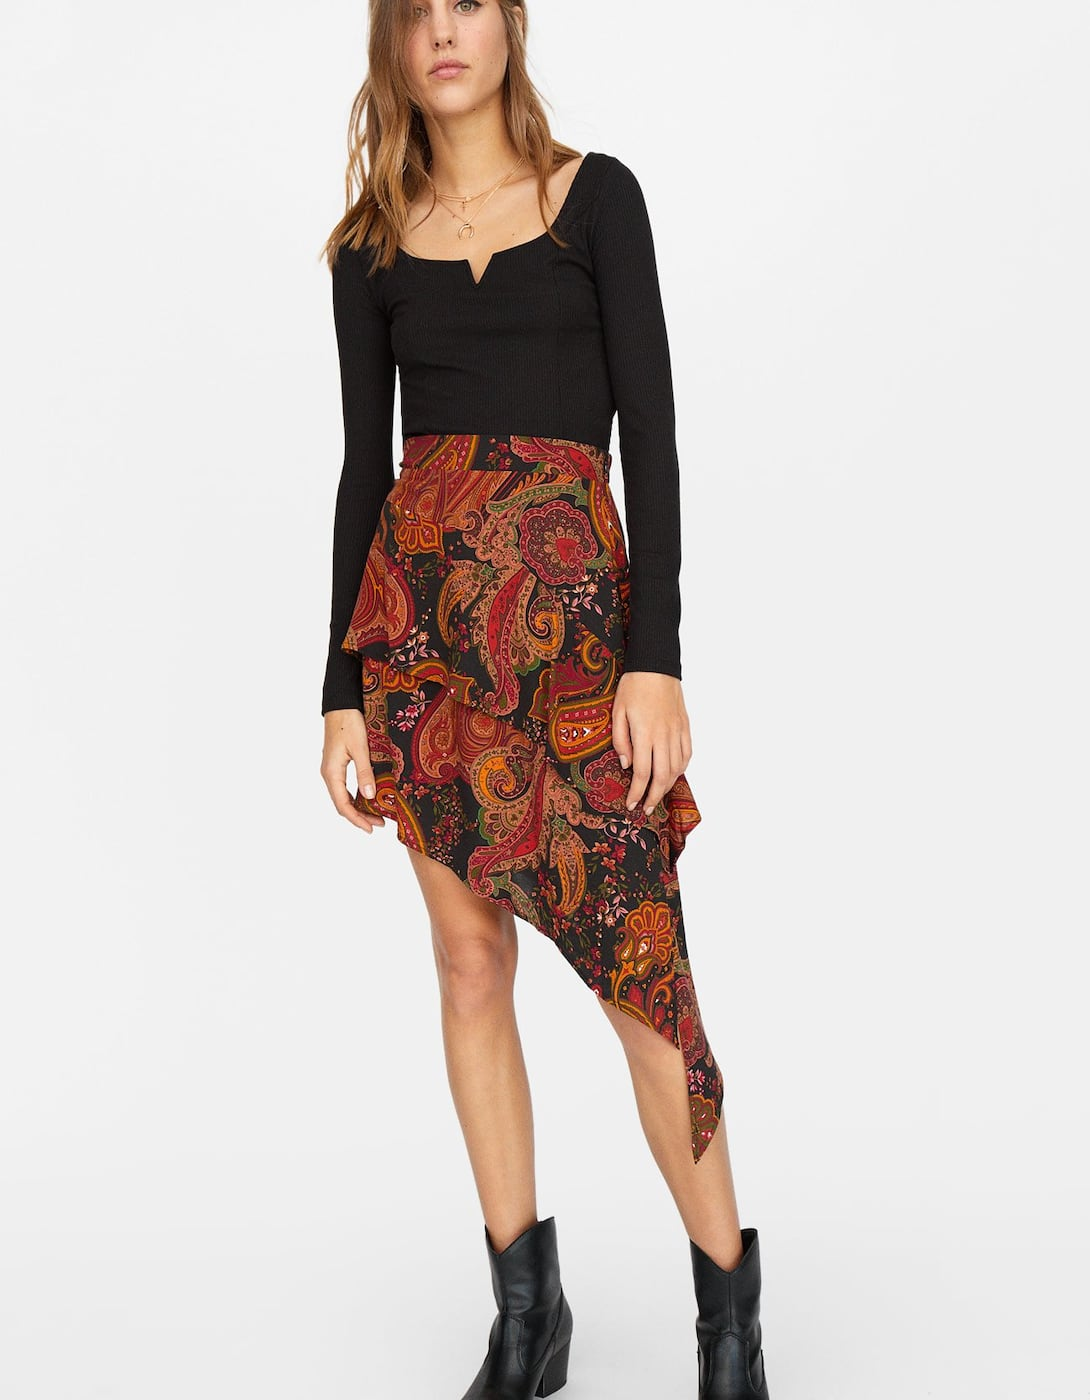 Asymmetric Ruffled Skirt by Stradivarius